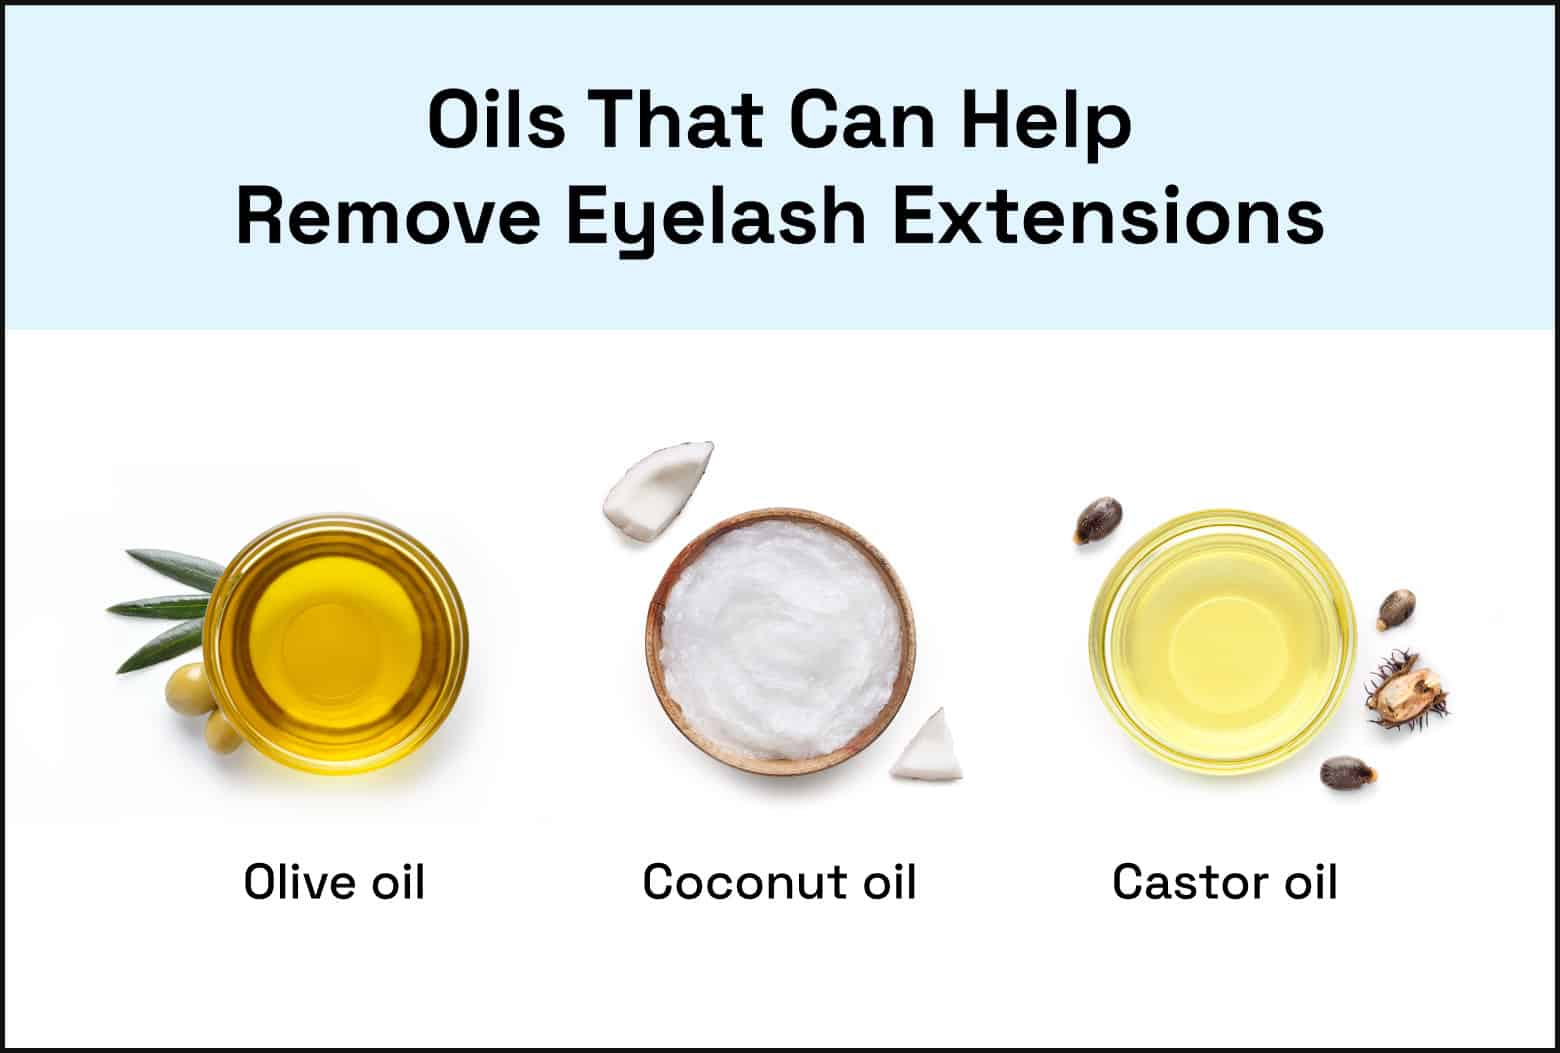 oils that can help remove eyelash extensions